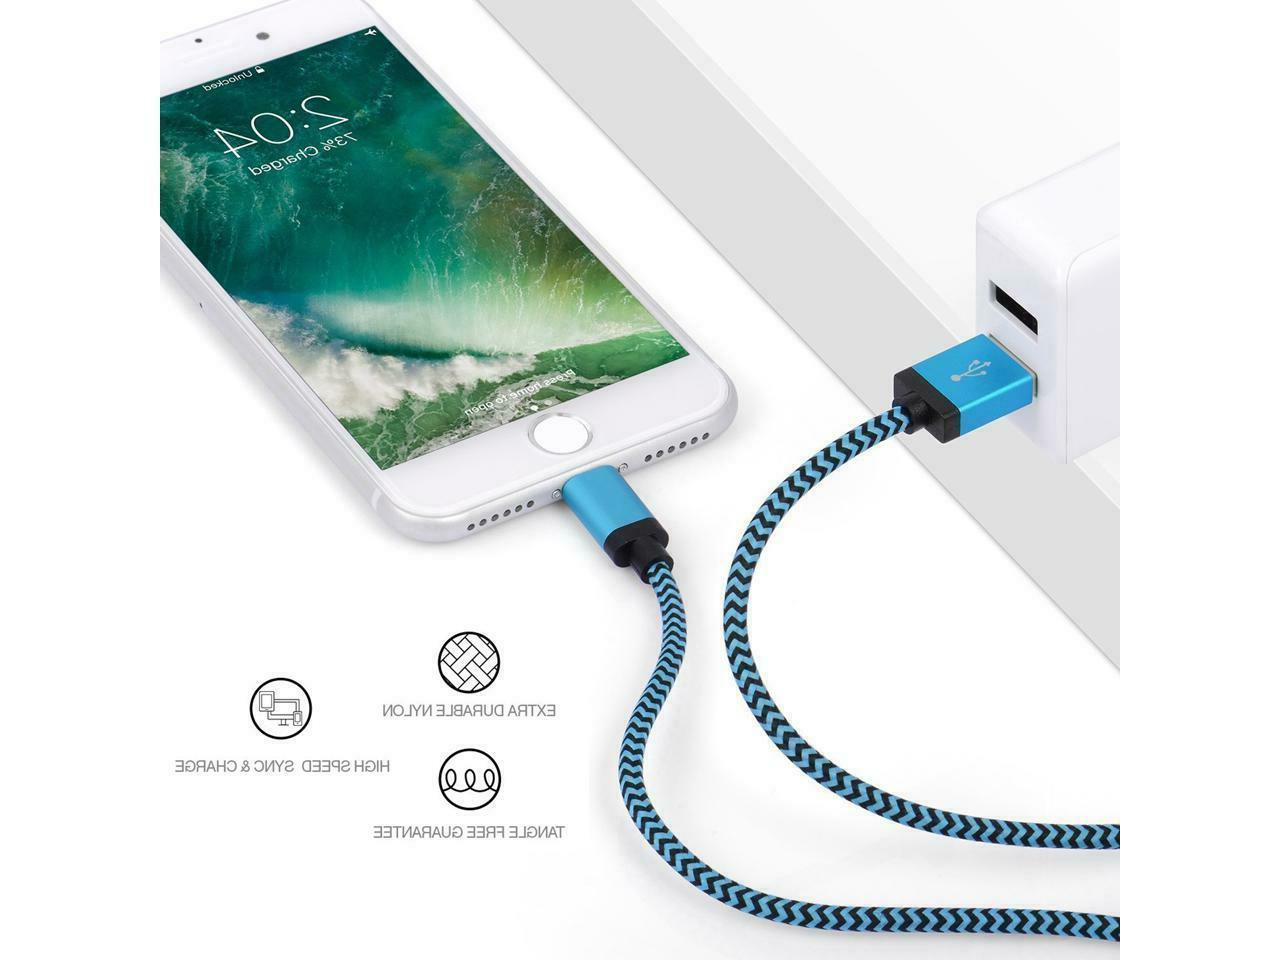 Braided Lightning Charger Cable for iPhone 7 Plus Xs 6ft 10ft